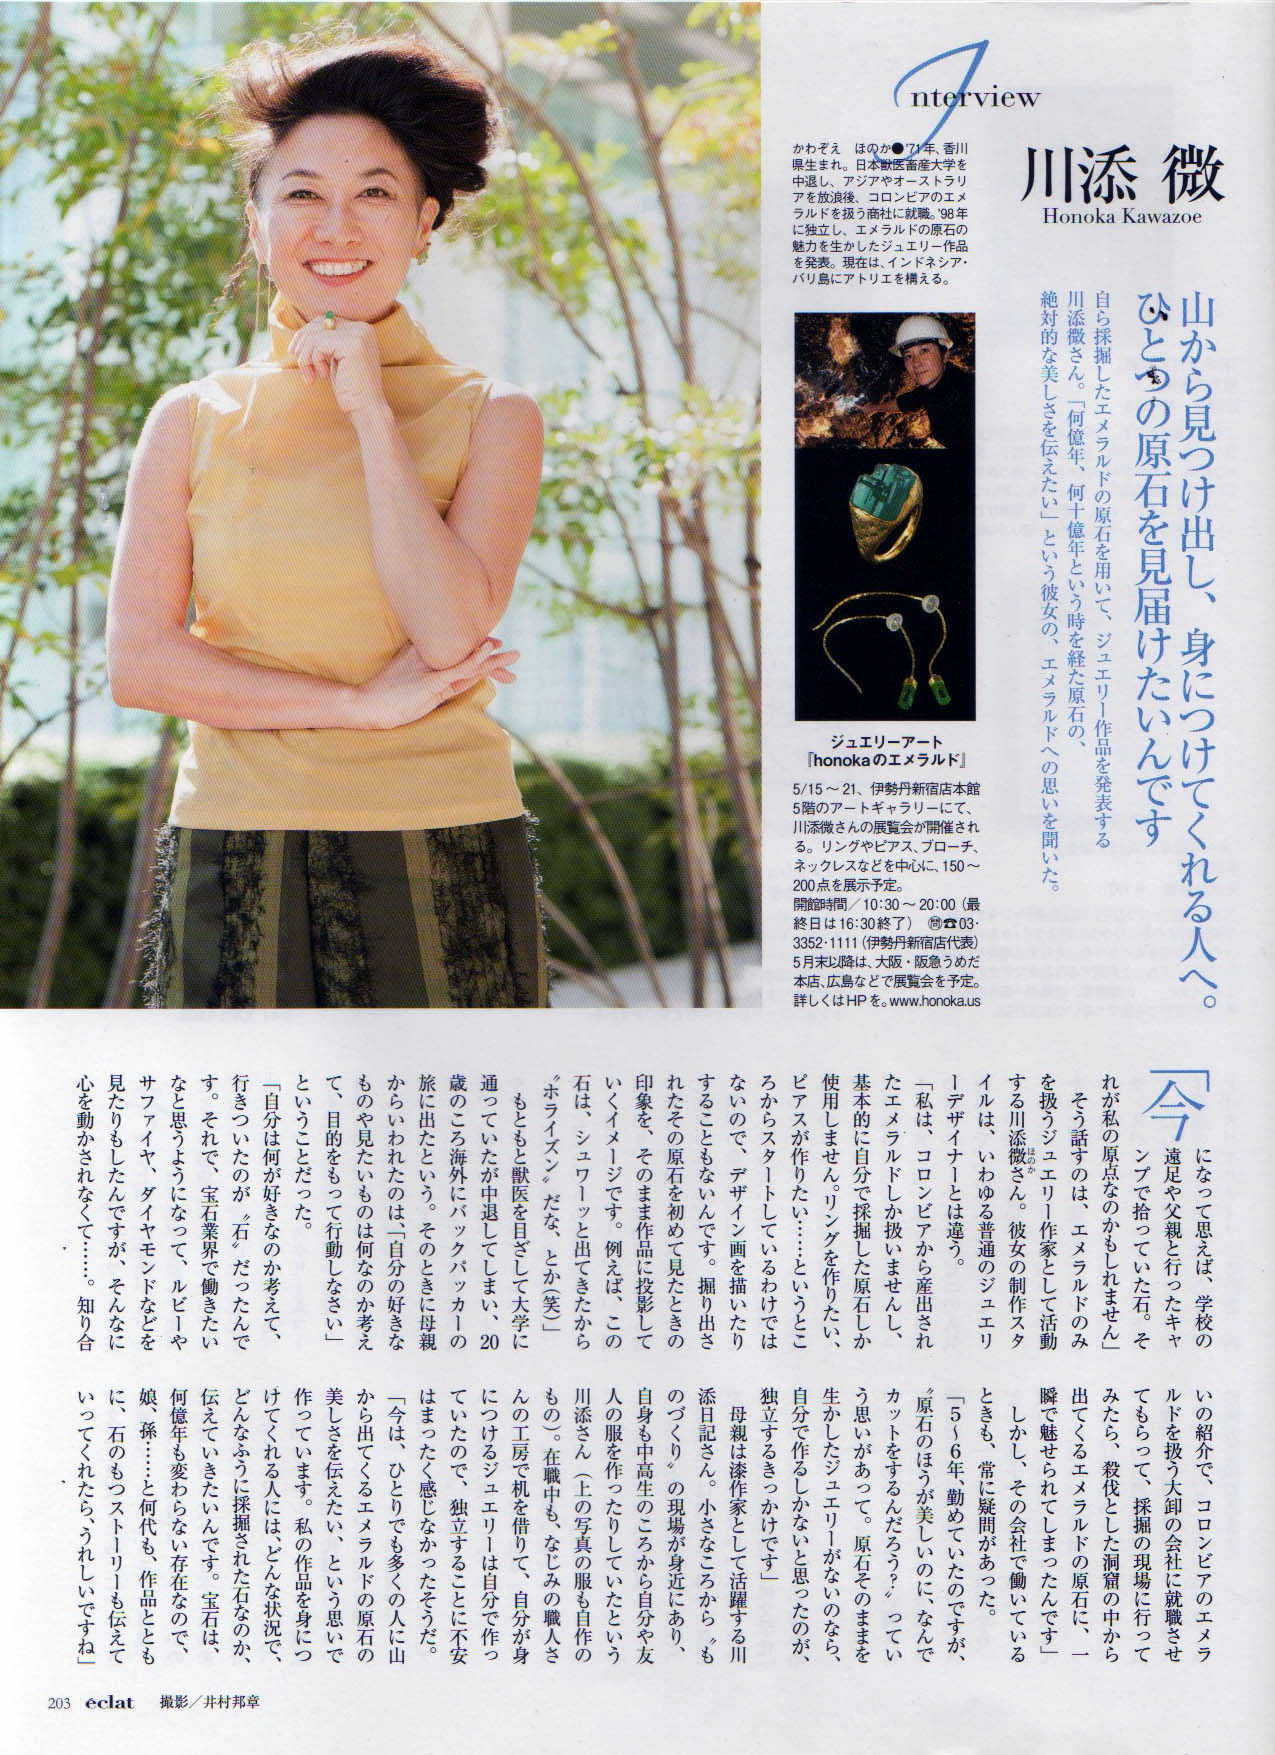 Honoka Interview 14 Yomiuri Newspaper